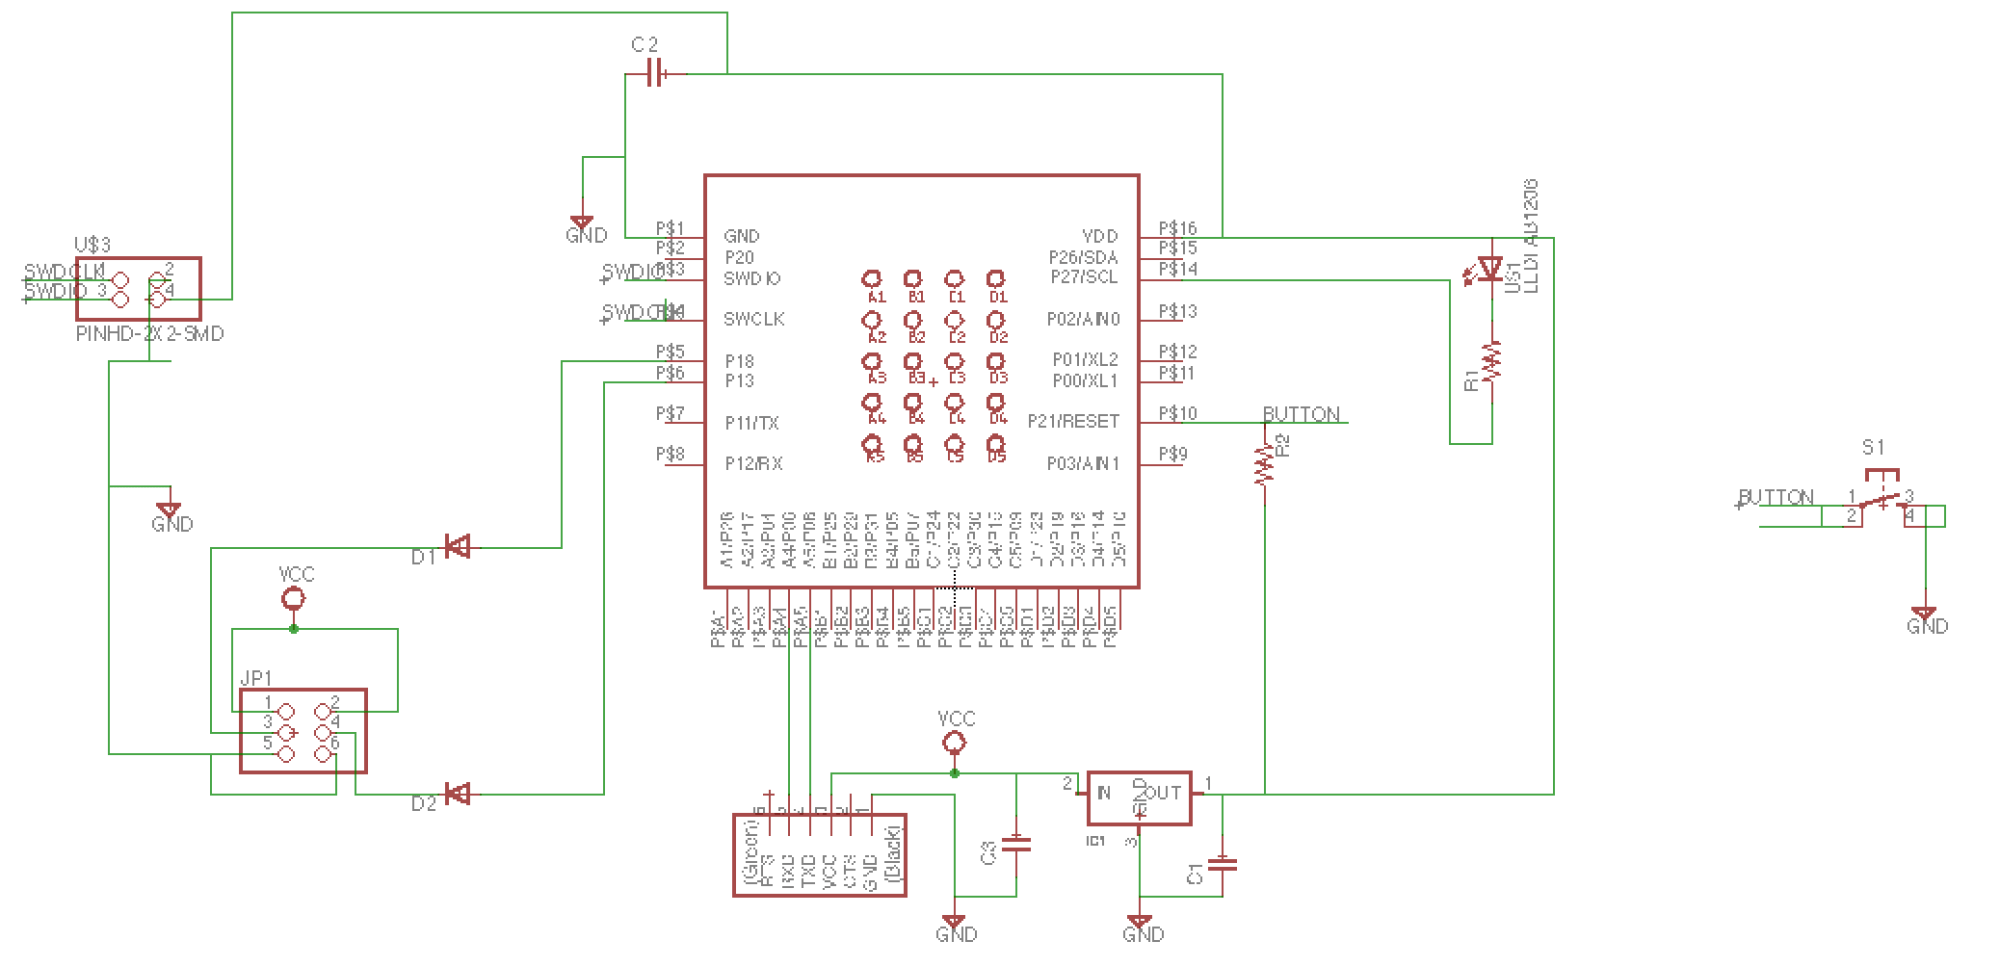 hight resolution of once able to edit the schematic i re made the original board that sam had made and then added in 2 output pins with diodes for current protection